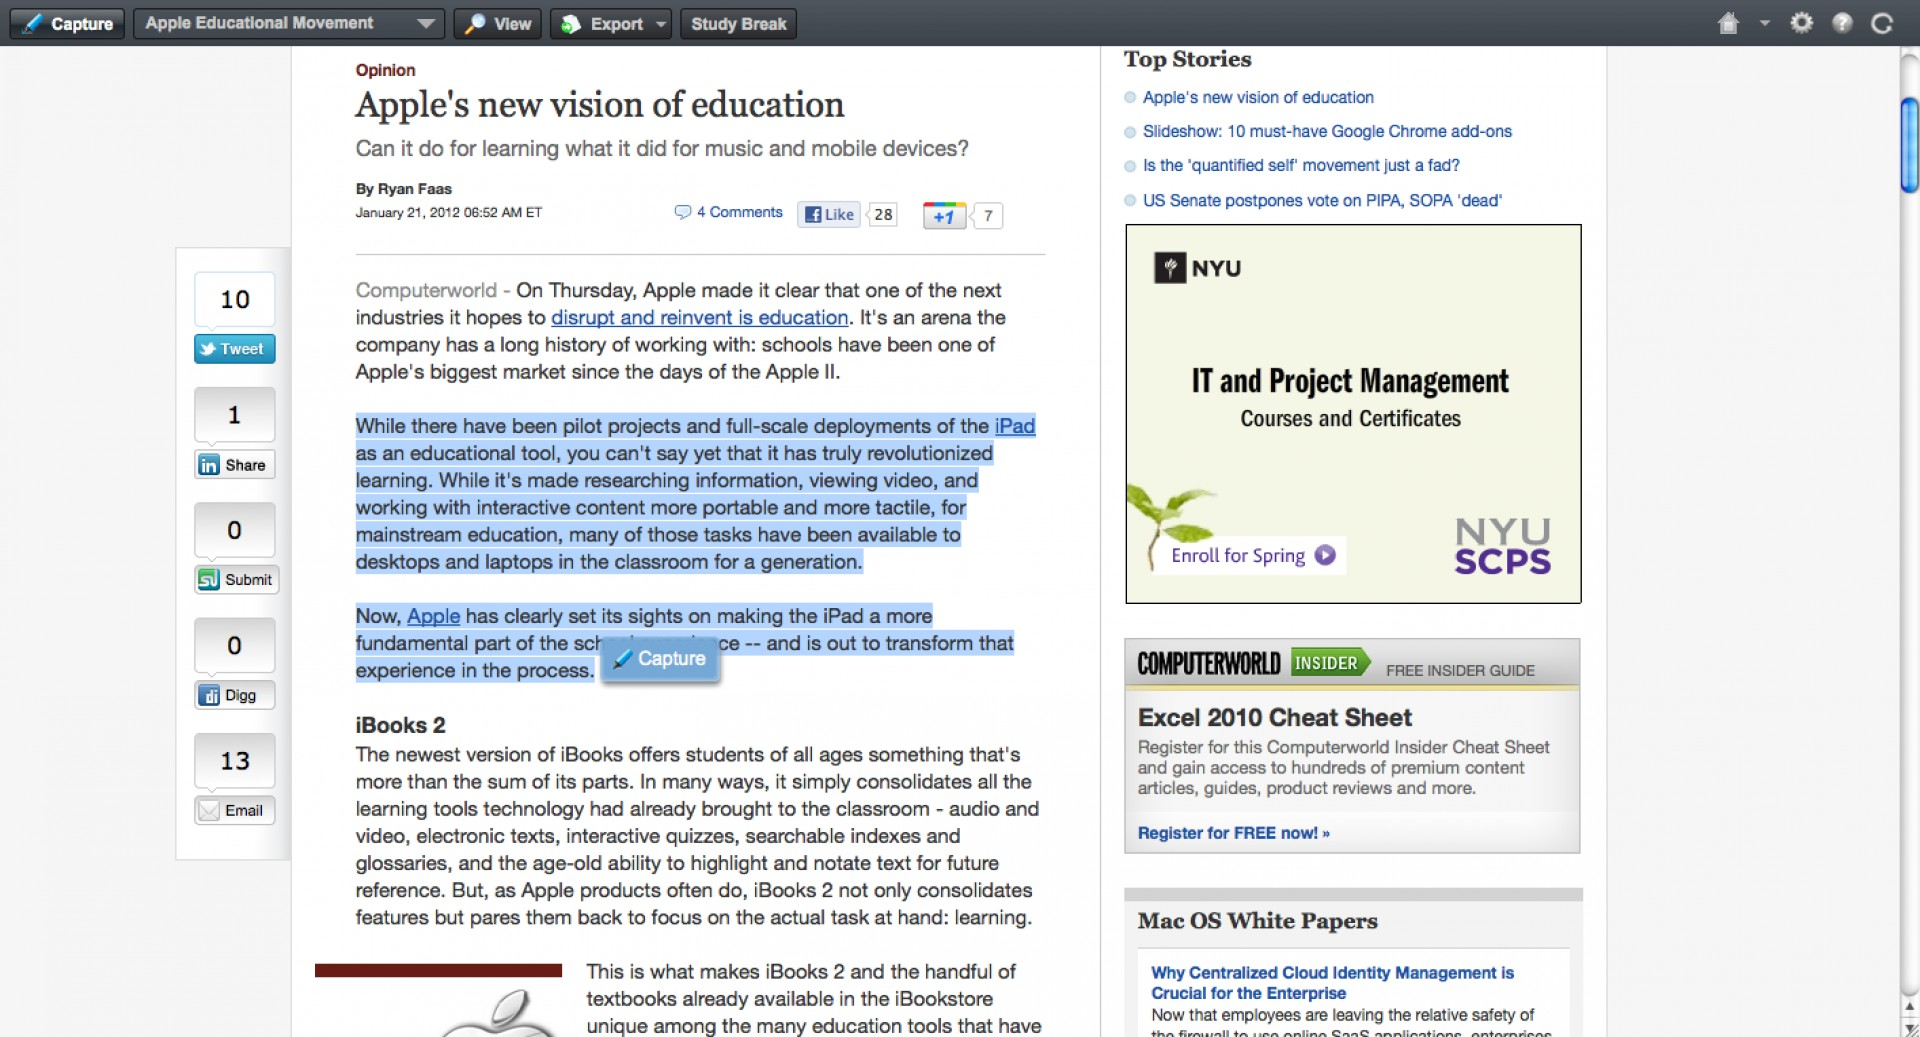 020 Essay Example Screenshot2012 21at11 15am How To Cite Website Stupendous In A Paper With No Author Or Date Citation Text Apa 1920